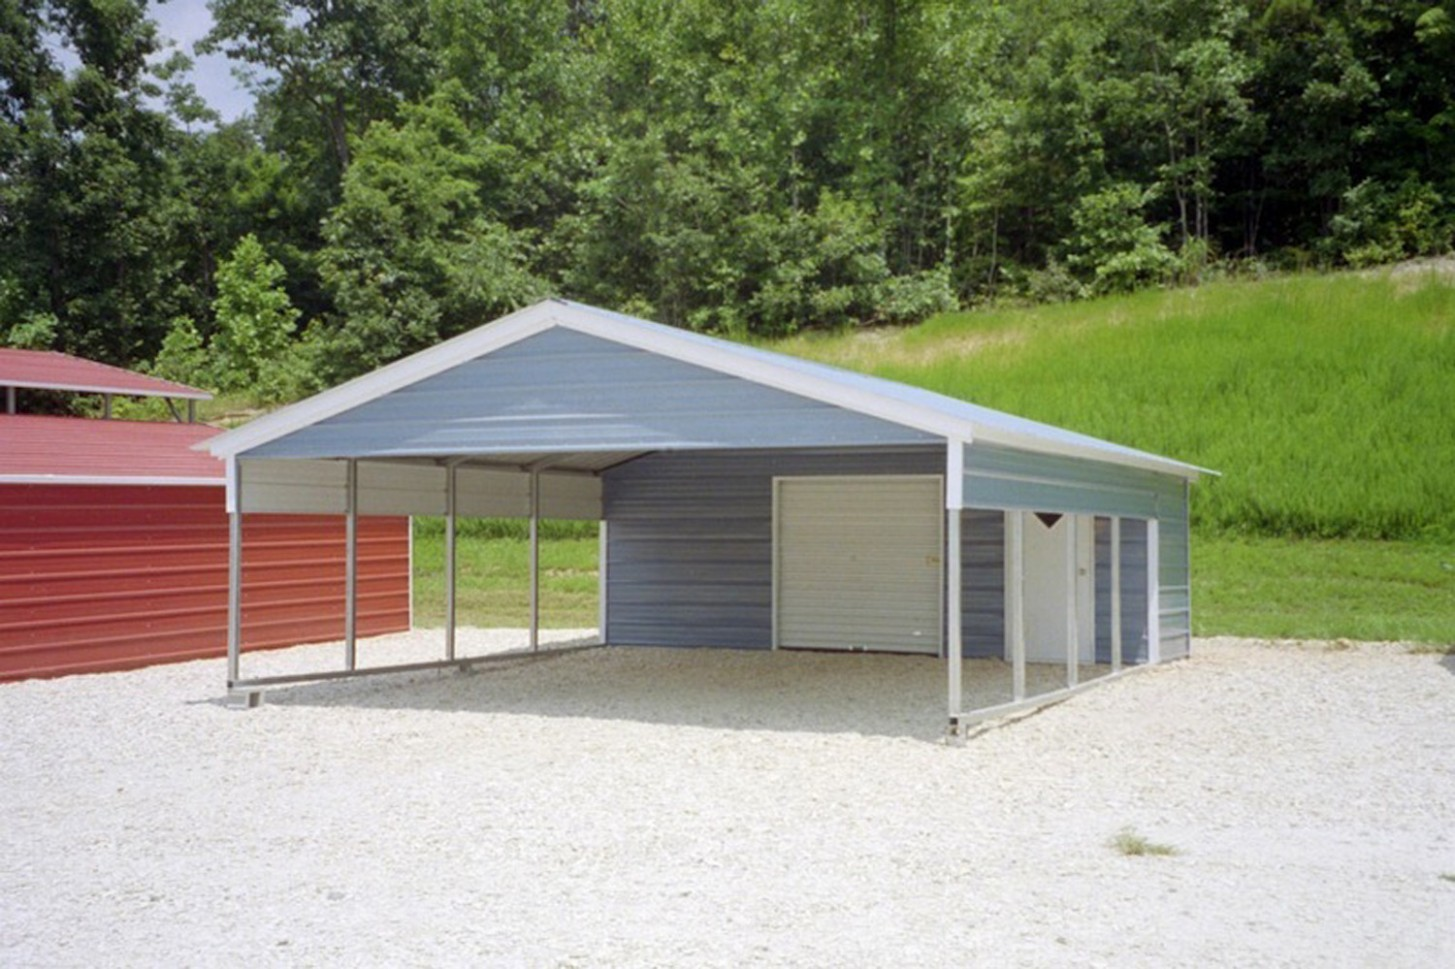 Understand The Background Of Carports Metal Carport Kits Now | carports metal carport kits